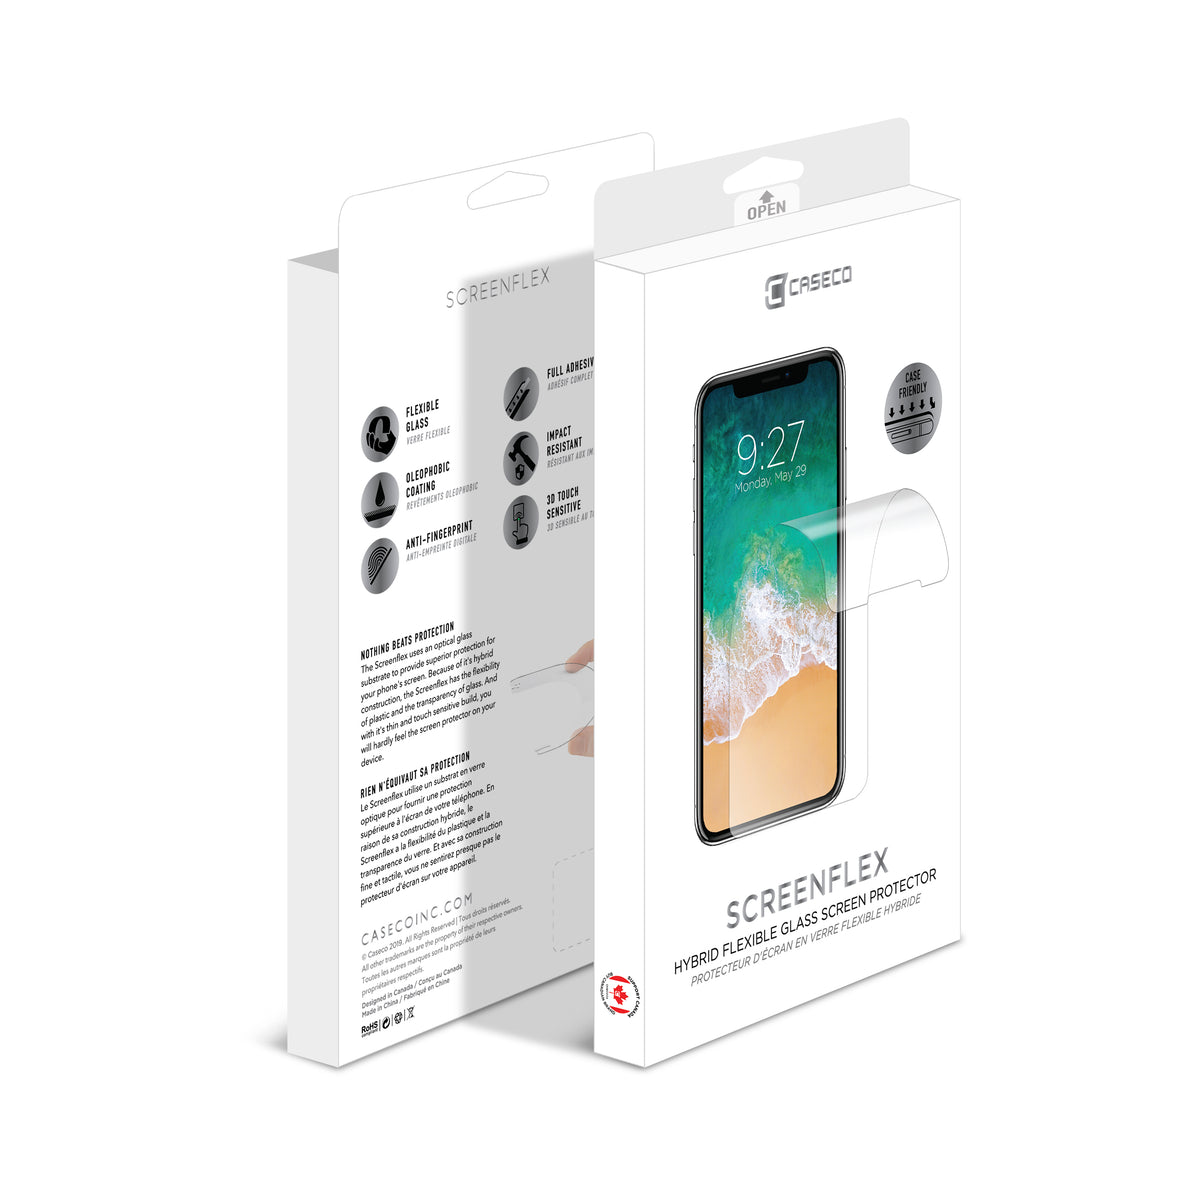 Screenflex - Flexible Screen Protector - iPhone XS Max